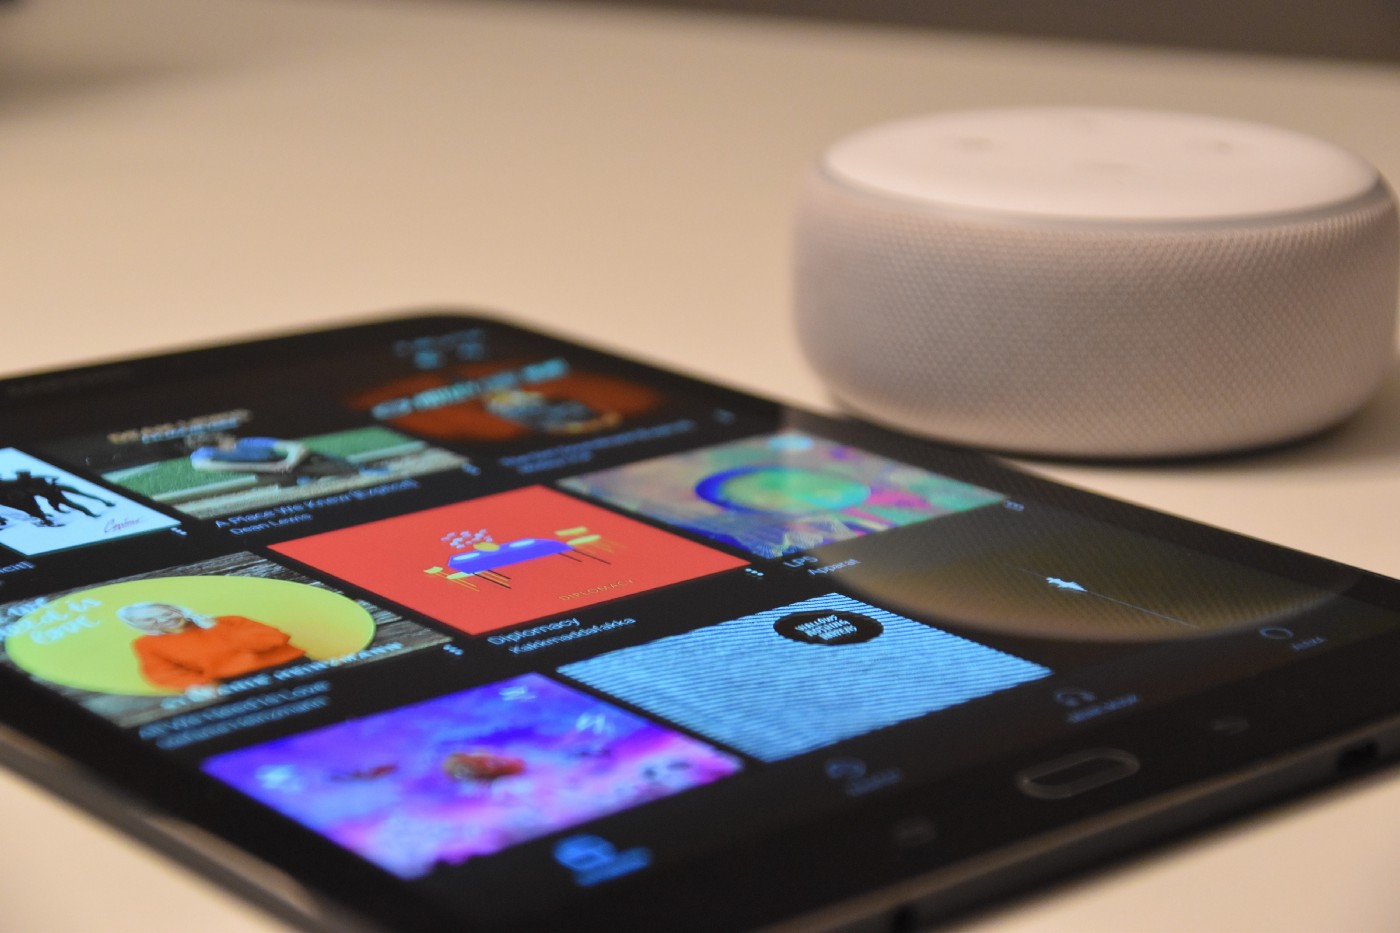 A close up of a tablet with an Amazon Echo Dot in the background.